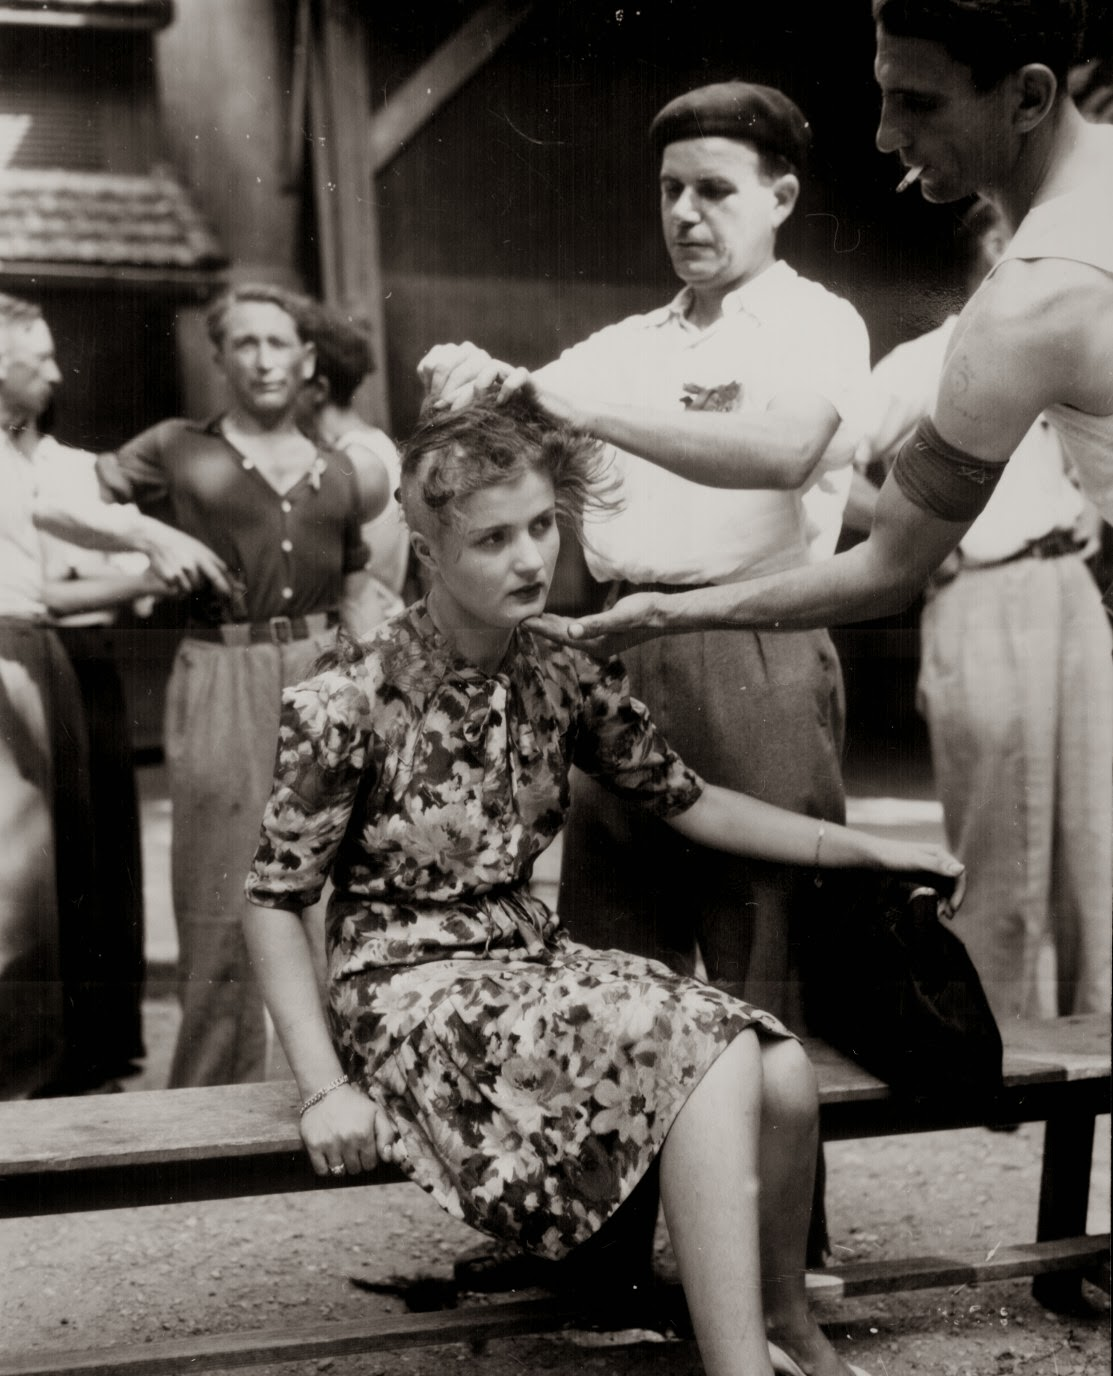 Teenage sexuality in nazi germany